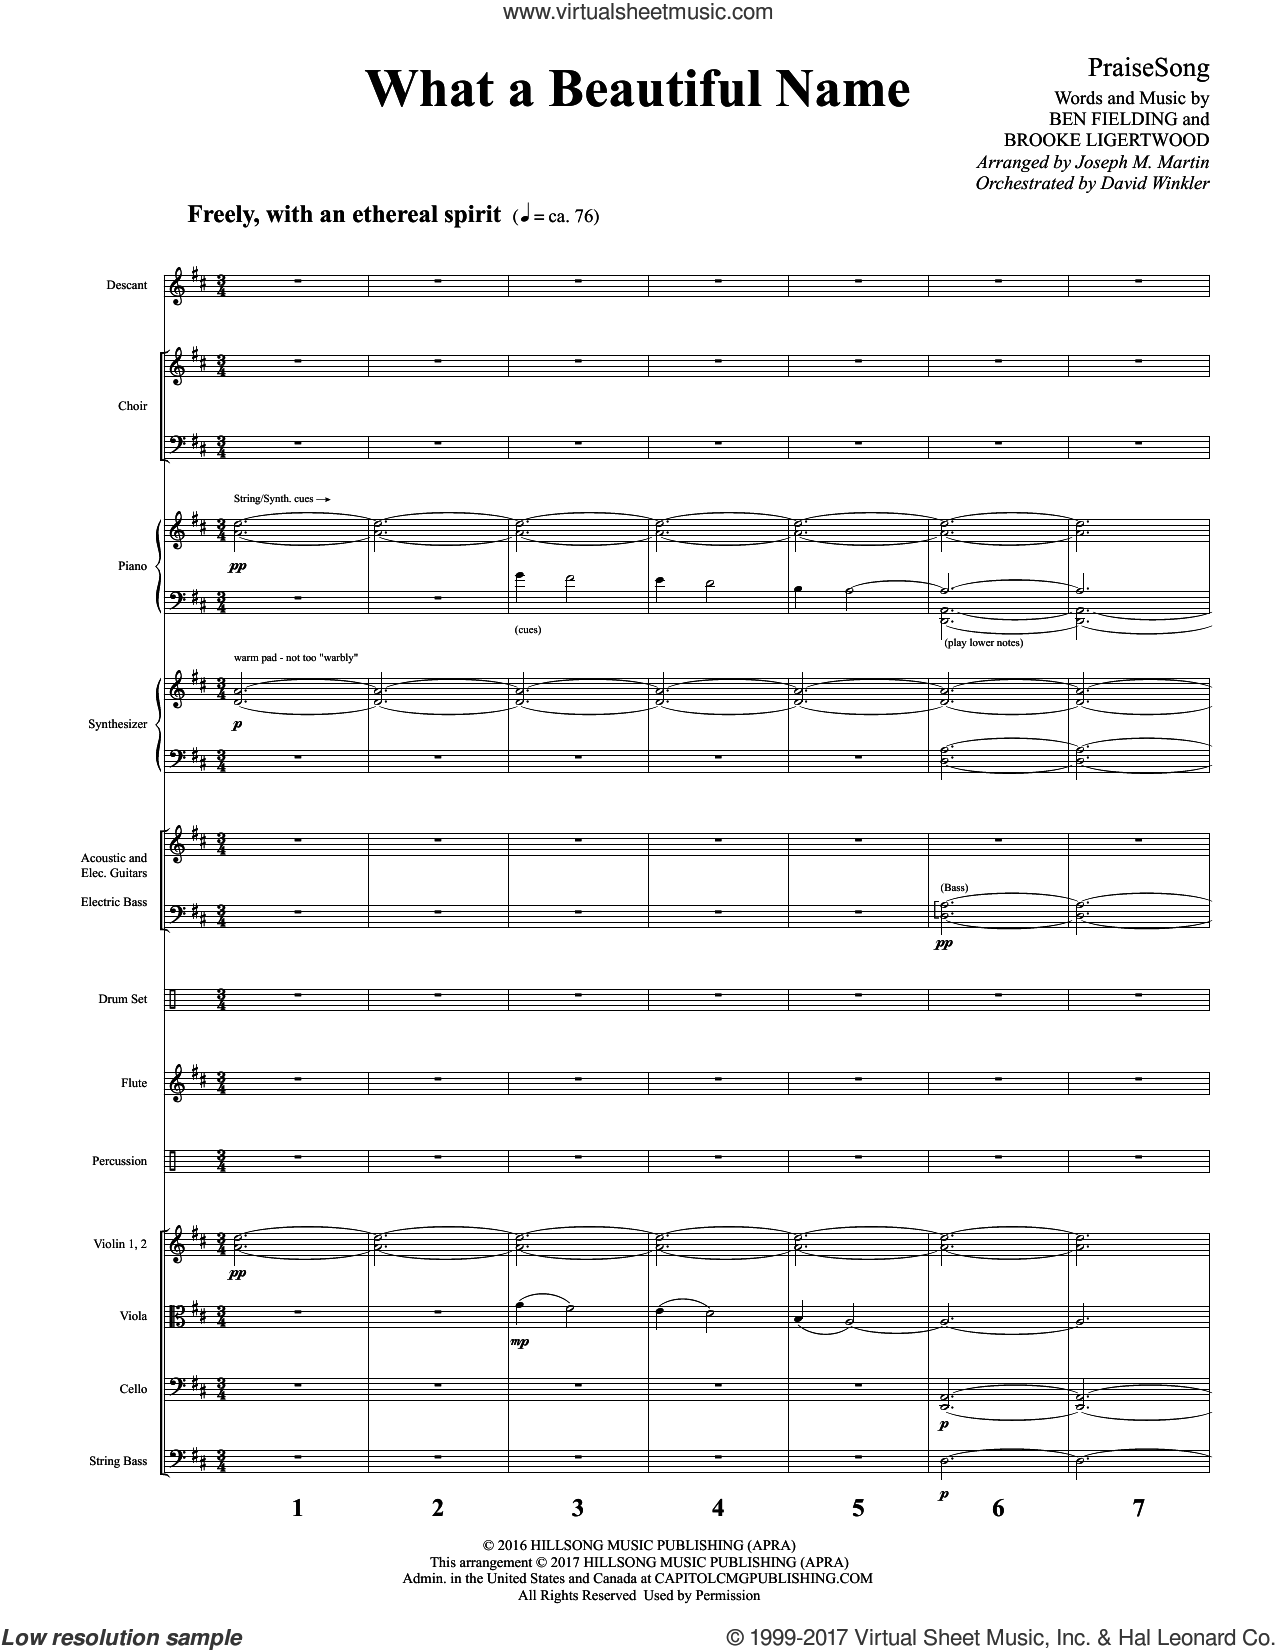 What a Beautiful Name (COMPLETE) sheet music for orchestra/band by Joseph M. Martin, Ben Fielding and Brooke Ligertwood, intermediate skill level